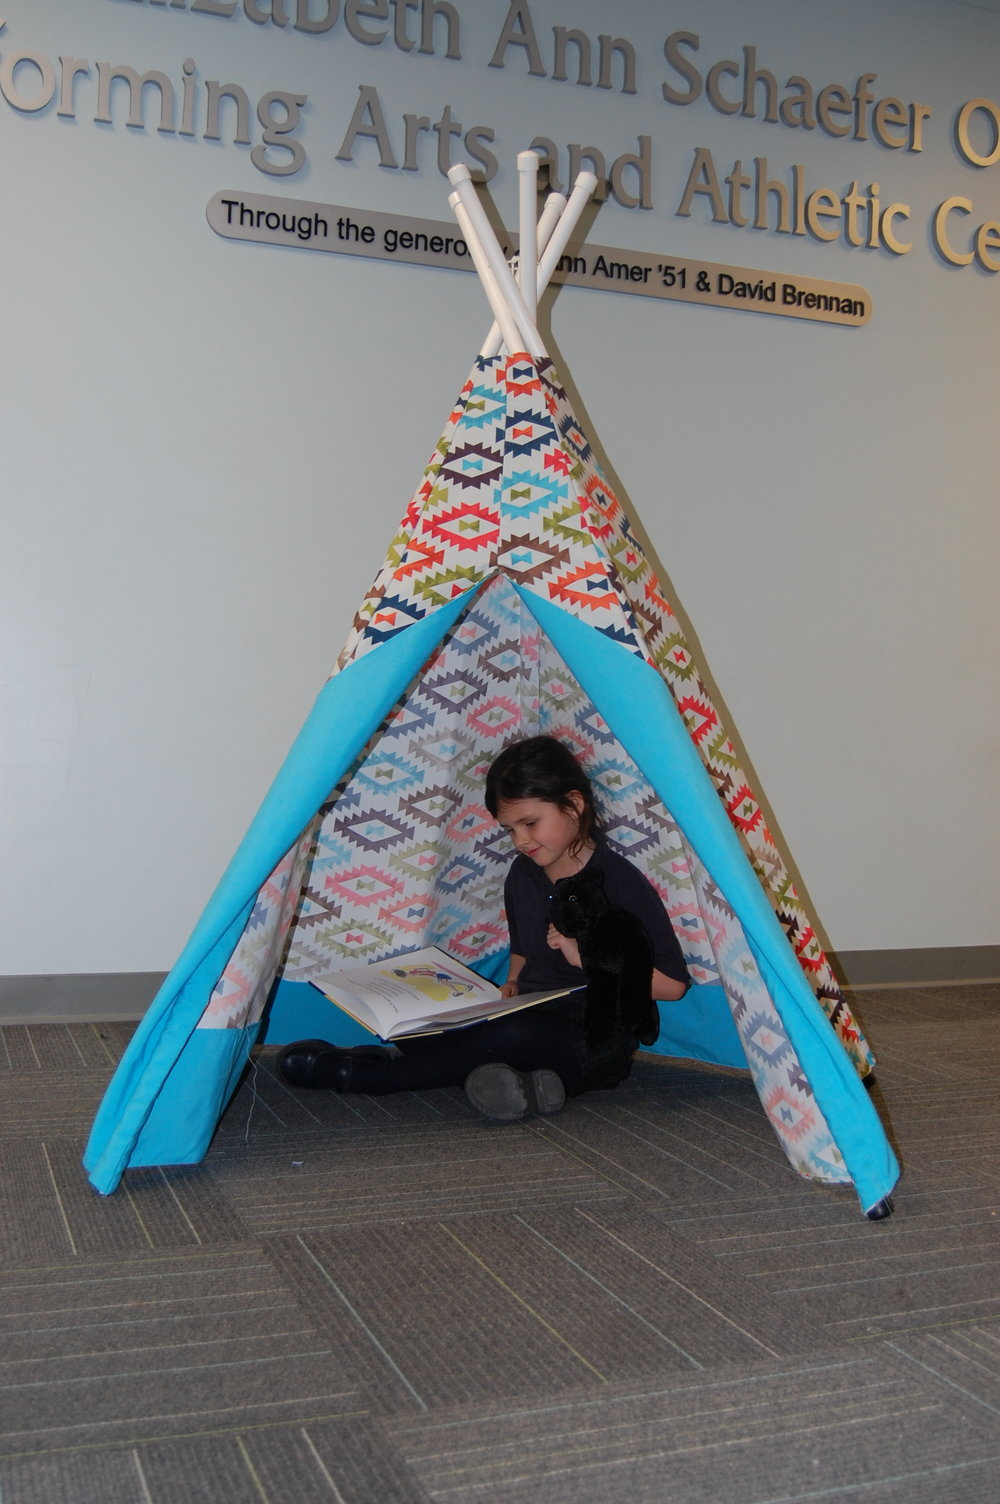 Witness the priceless expression on your child or grandchild's face when you give them their very own portable cloth teepee tent. If you're looking for the ultimate present for any child, this tent will win their hearts and creative attention for years of playtime.